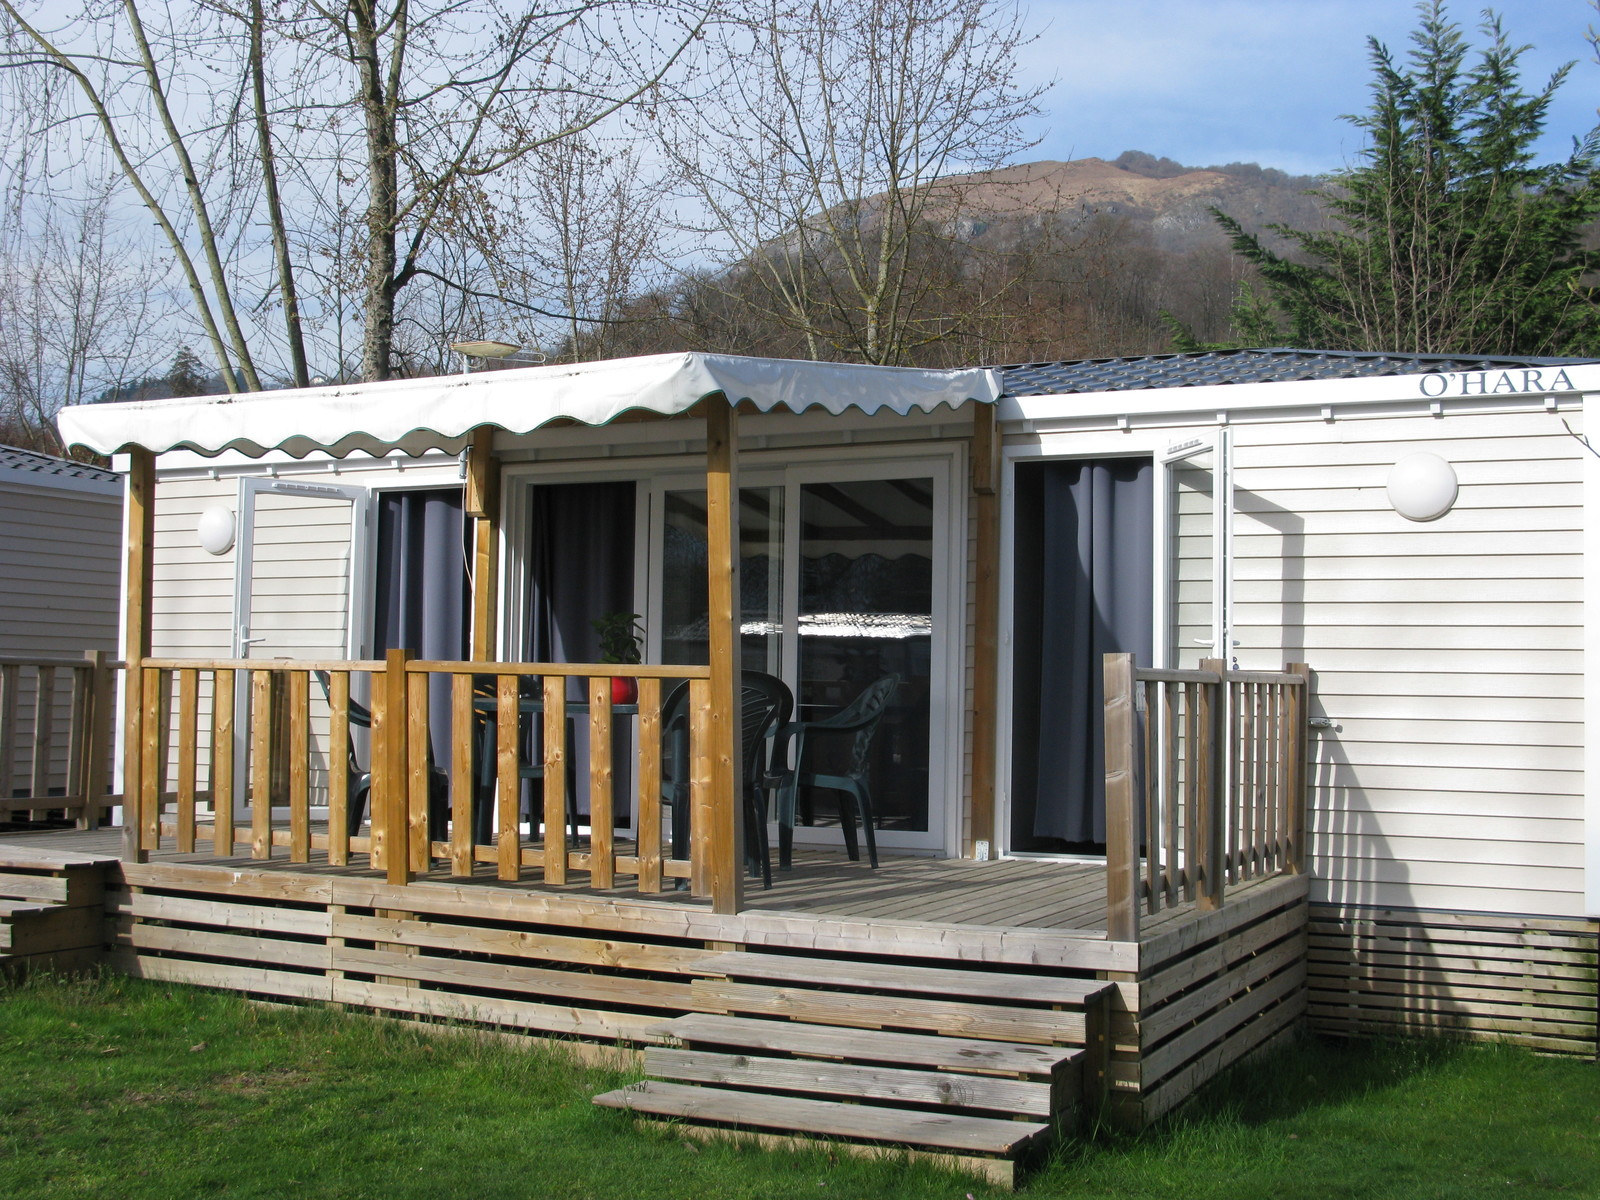 Camping Pyrenees Sunelia Les 3 Vallees Argeles-Gazost